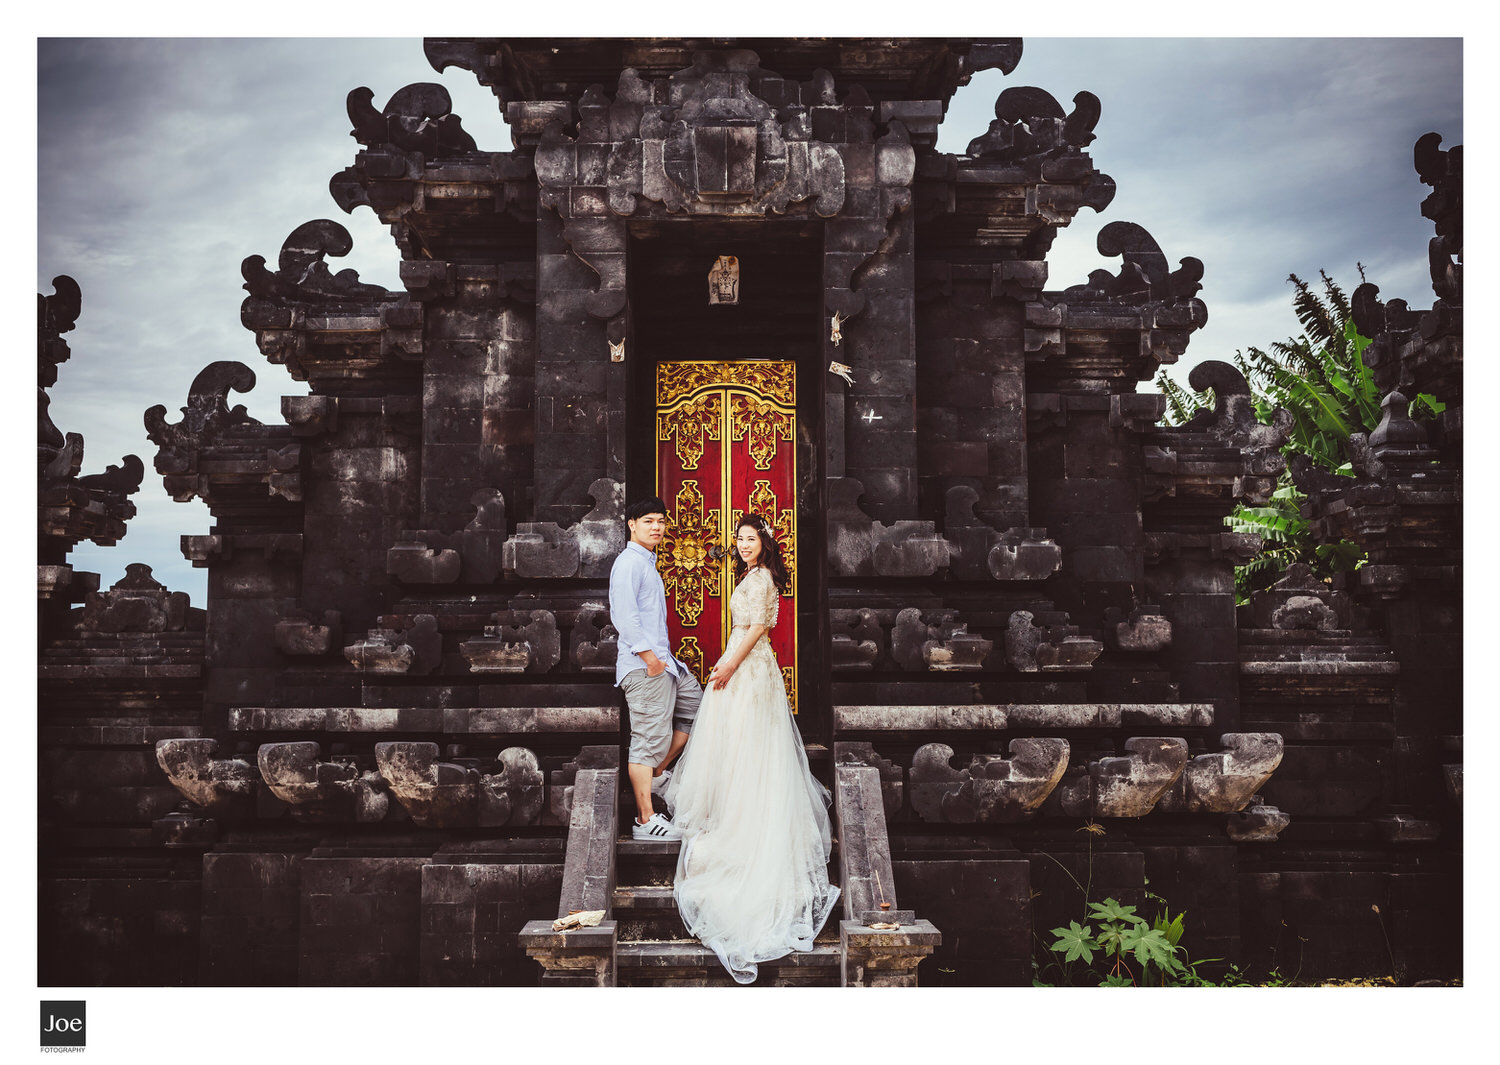 joe-fotography-14-bali-pre-wedding-amelie.jpg